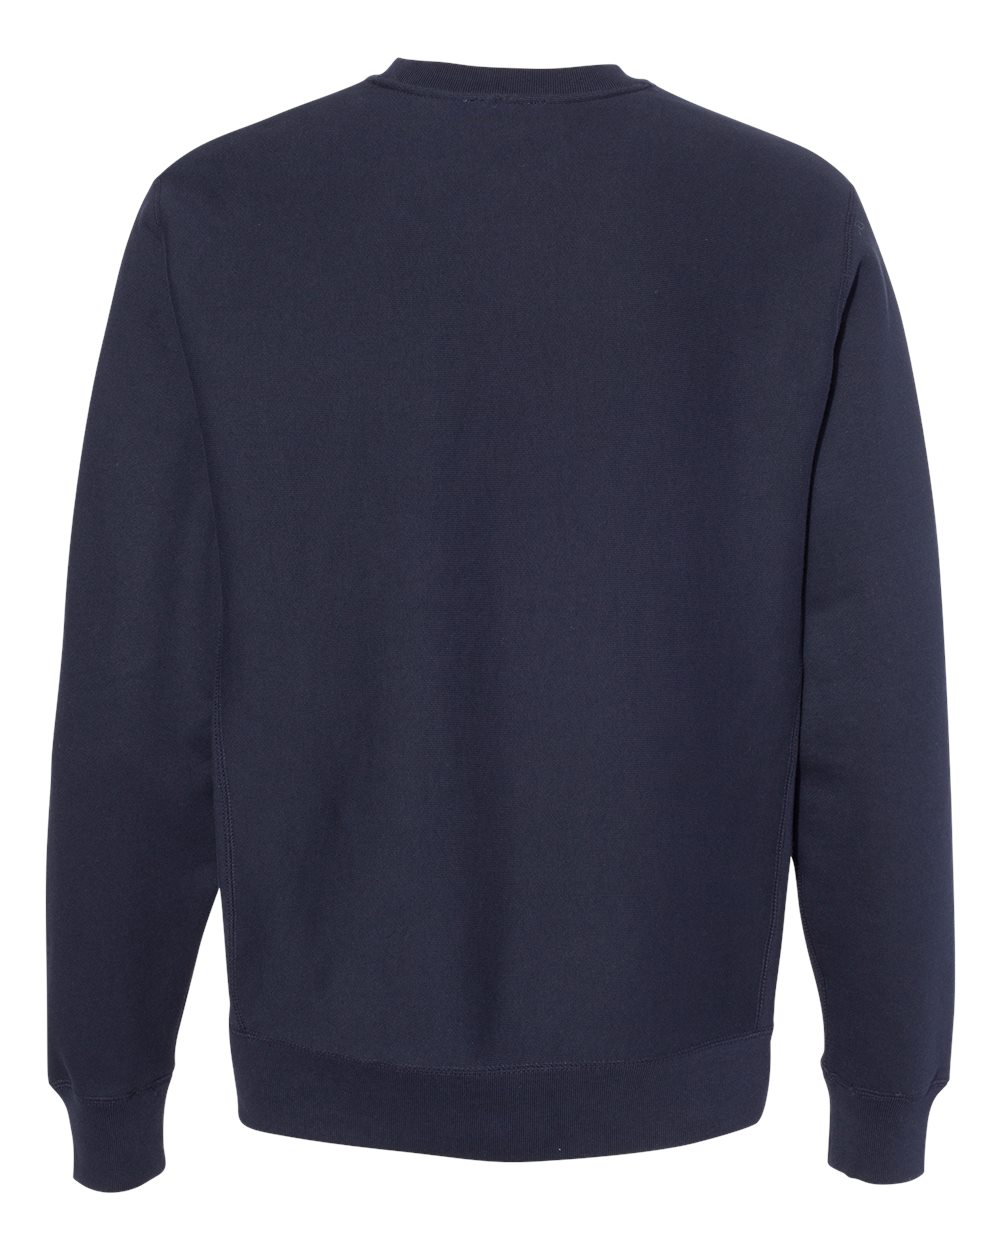 Independent-Trading-Co-Mens-Premium-Heavyweight-Cross-Grain-Sweatshirt-IND5000C thumbnail 16